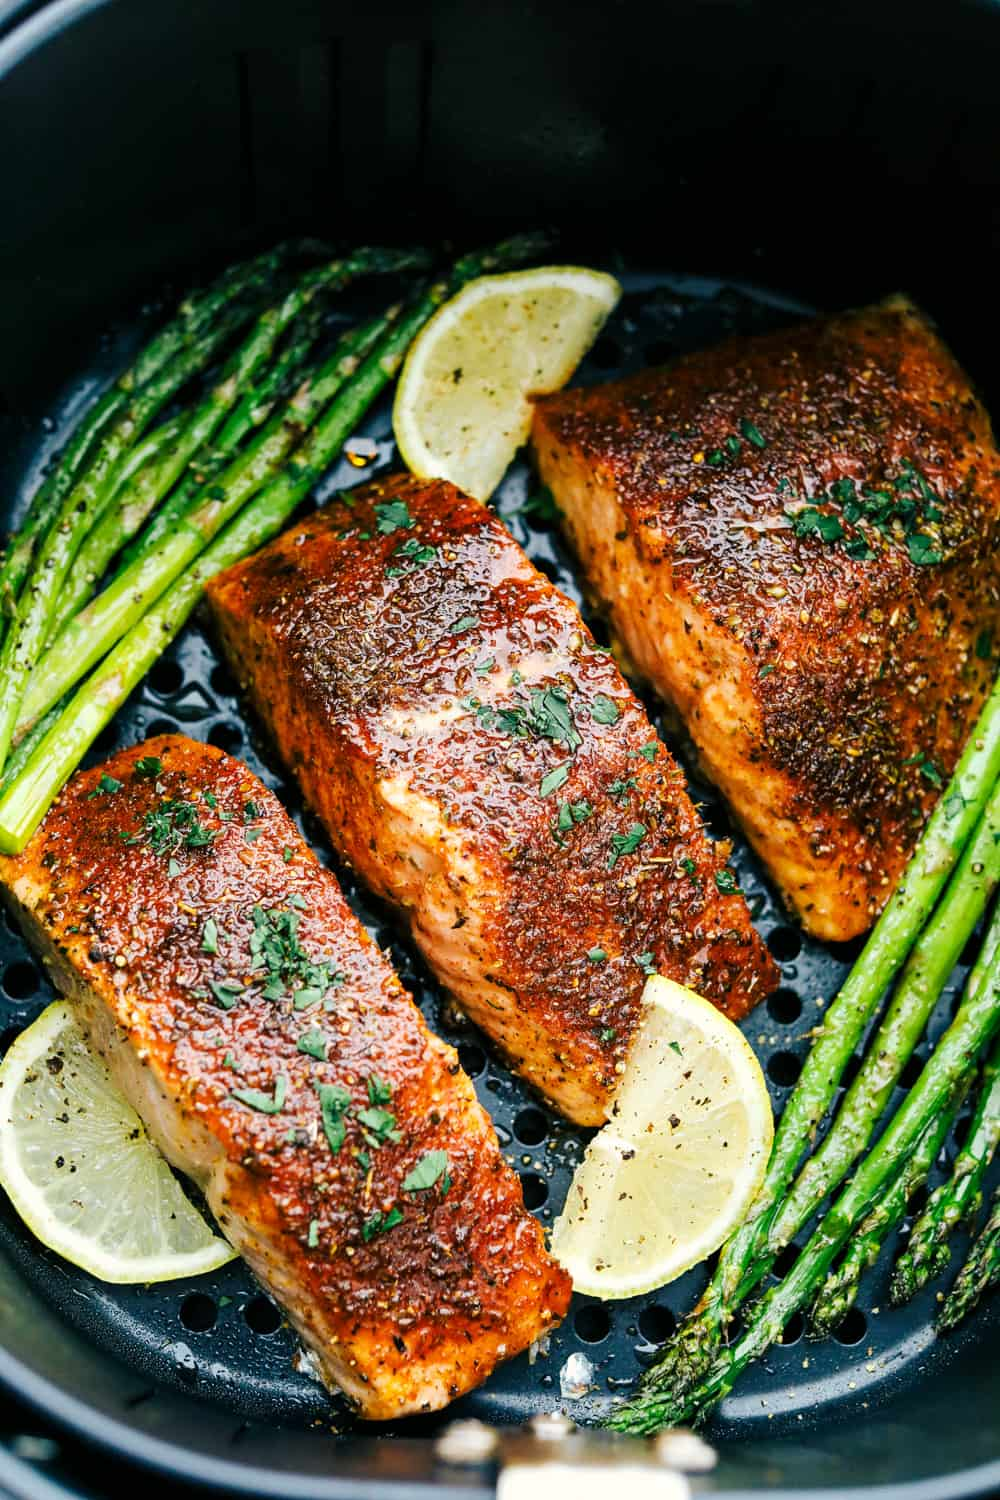 Juicy, tender brown sugar garlic air fryer salmon.